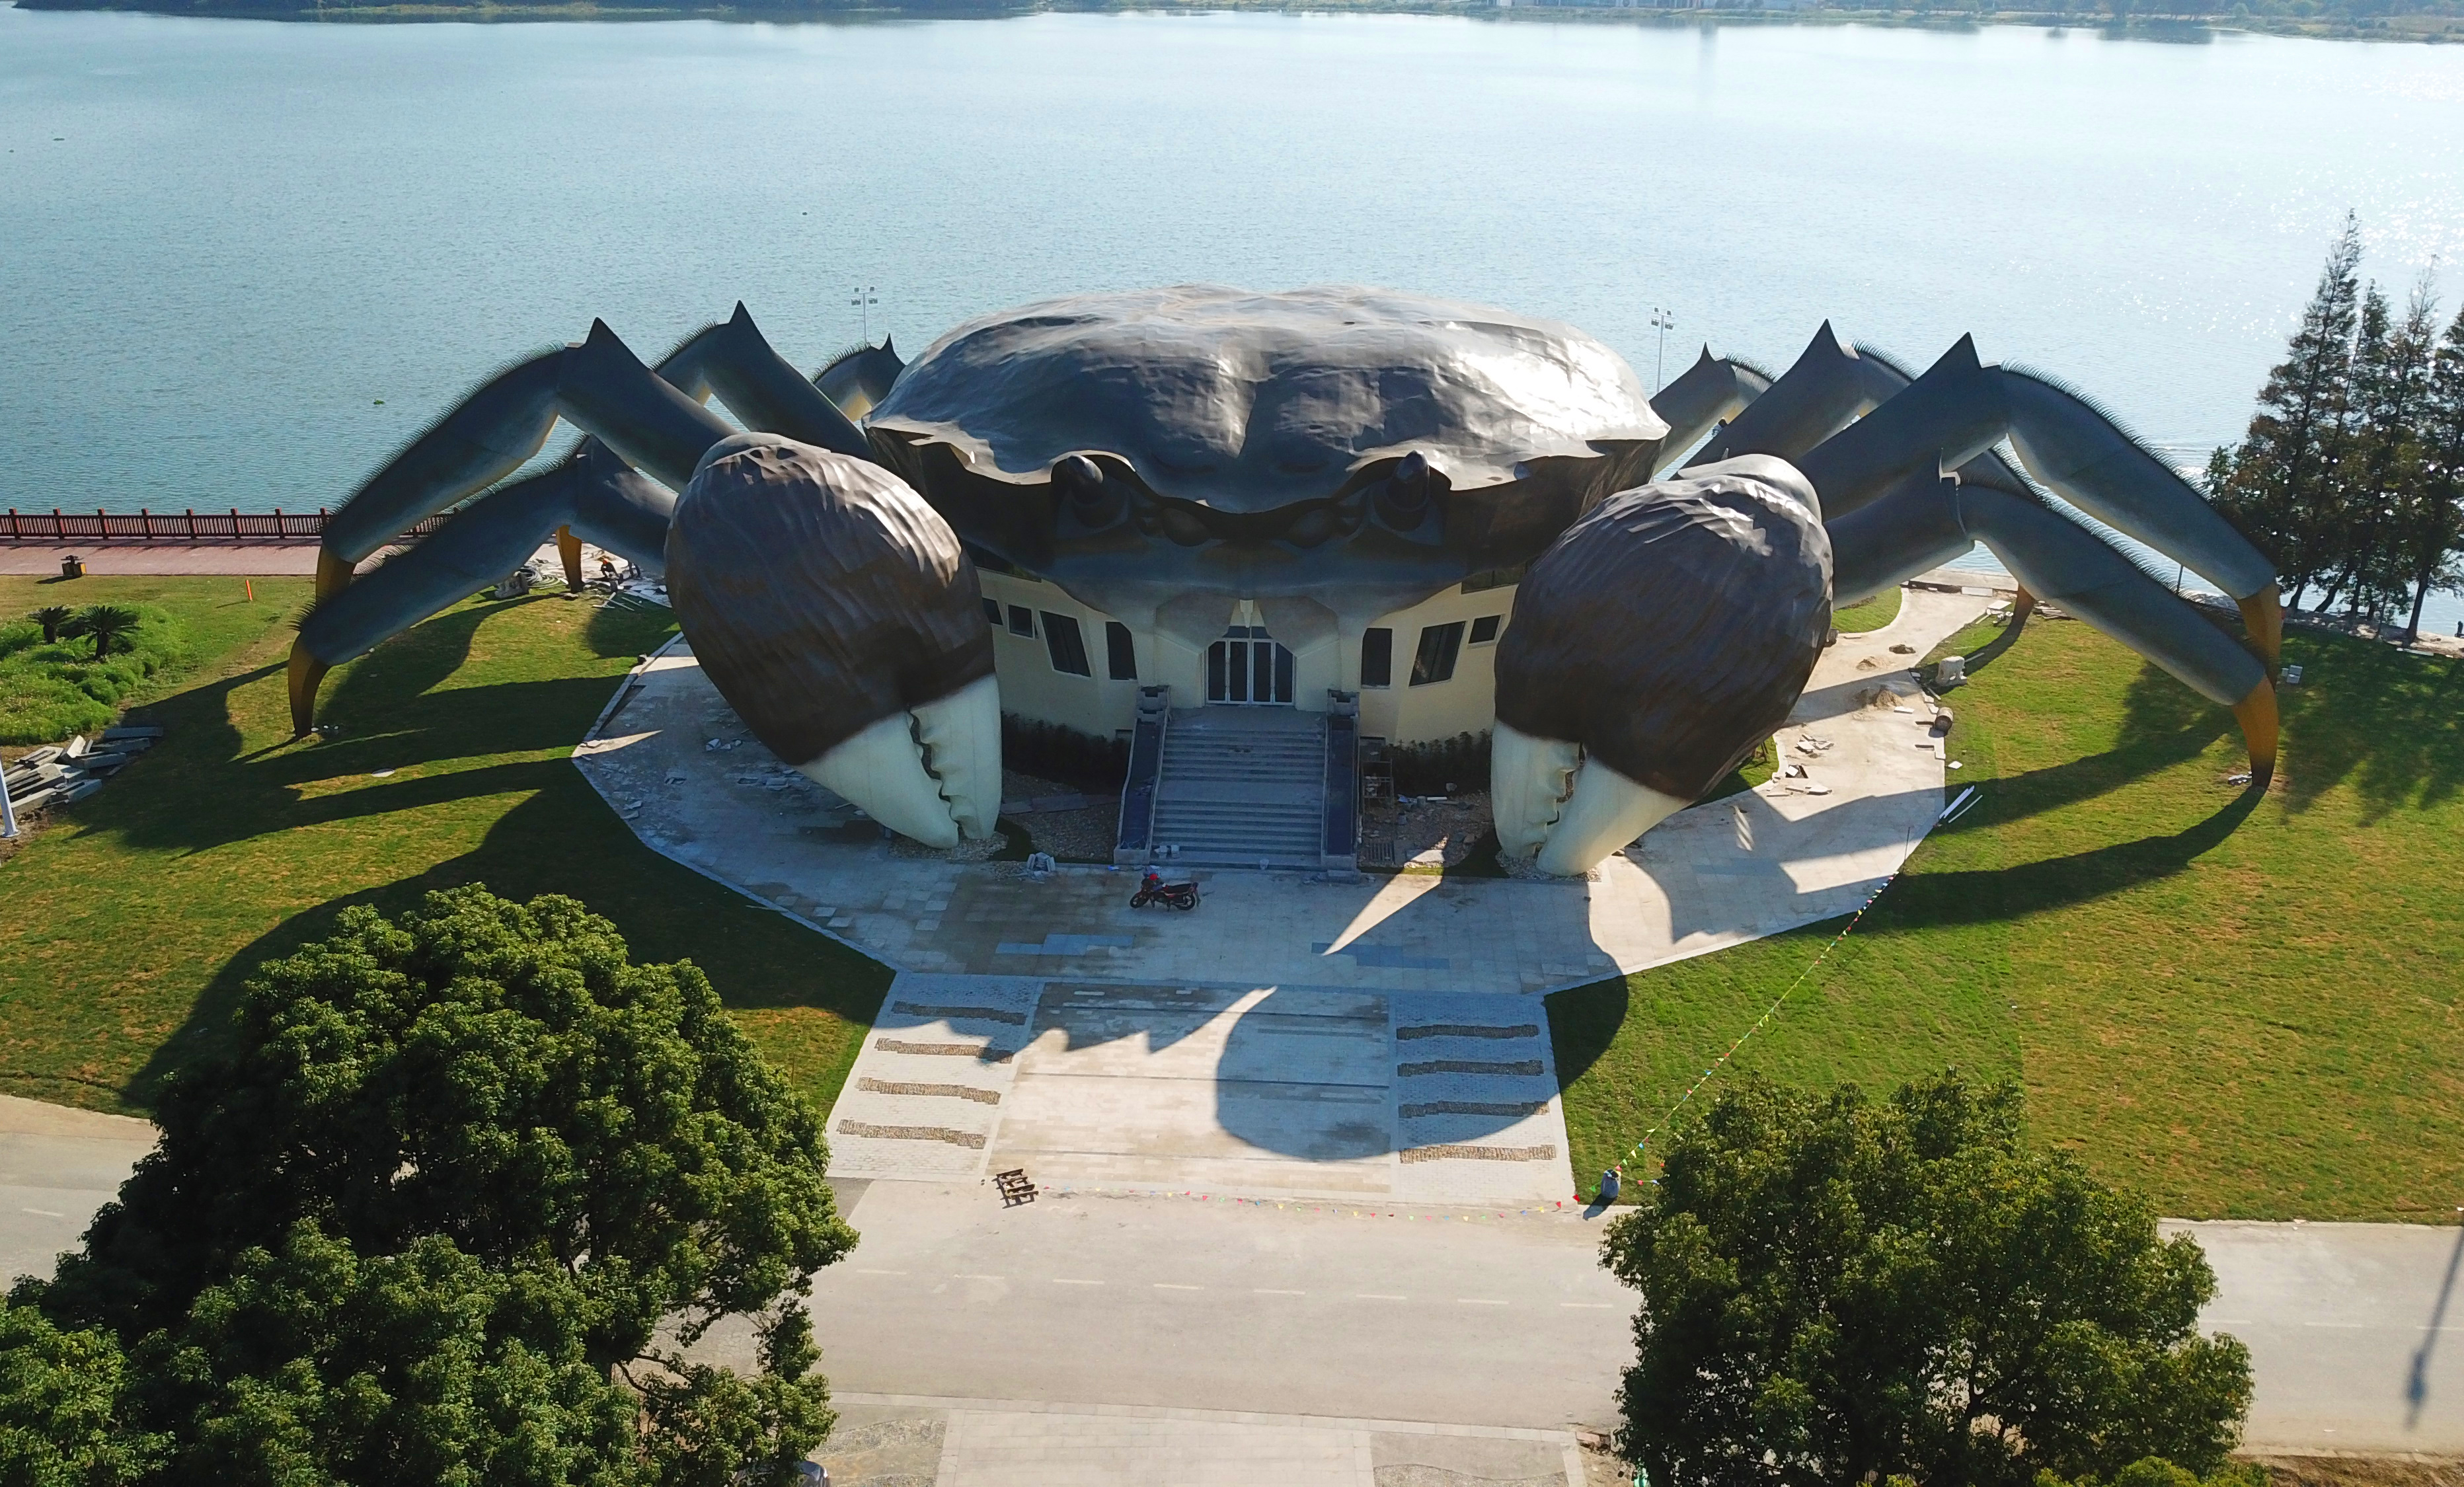 Slide 46 of 57: CAPTION: SUZHOU, CHINA - OCTOBER 31: Aerial view of a crab-shaped eco museum under construction on the shore of Yangcheng Lake on October 31, 2017 in Suzhou, Jiangsu Province of China. The crabs produced in Yangcheng Lake have long enjoyed great reputation abroad, and are sometimes known as 'Chinese Mitten Crabs'. The stainless steel exo museum is 75 meters long and 16 meters high with three floors in all, which will provide residents a place for recreation and leisure after completion. The construction work is still under way and it is expected to open in the second half of the next year. (Photo by VCG/Getty Images)